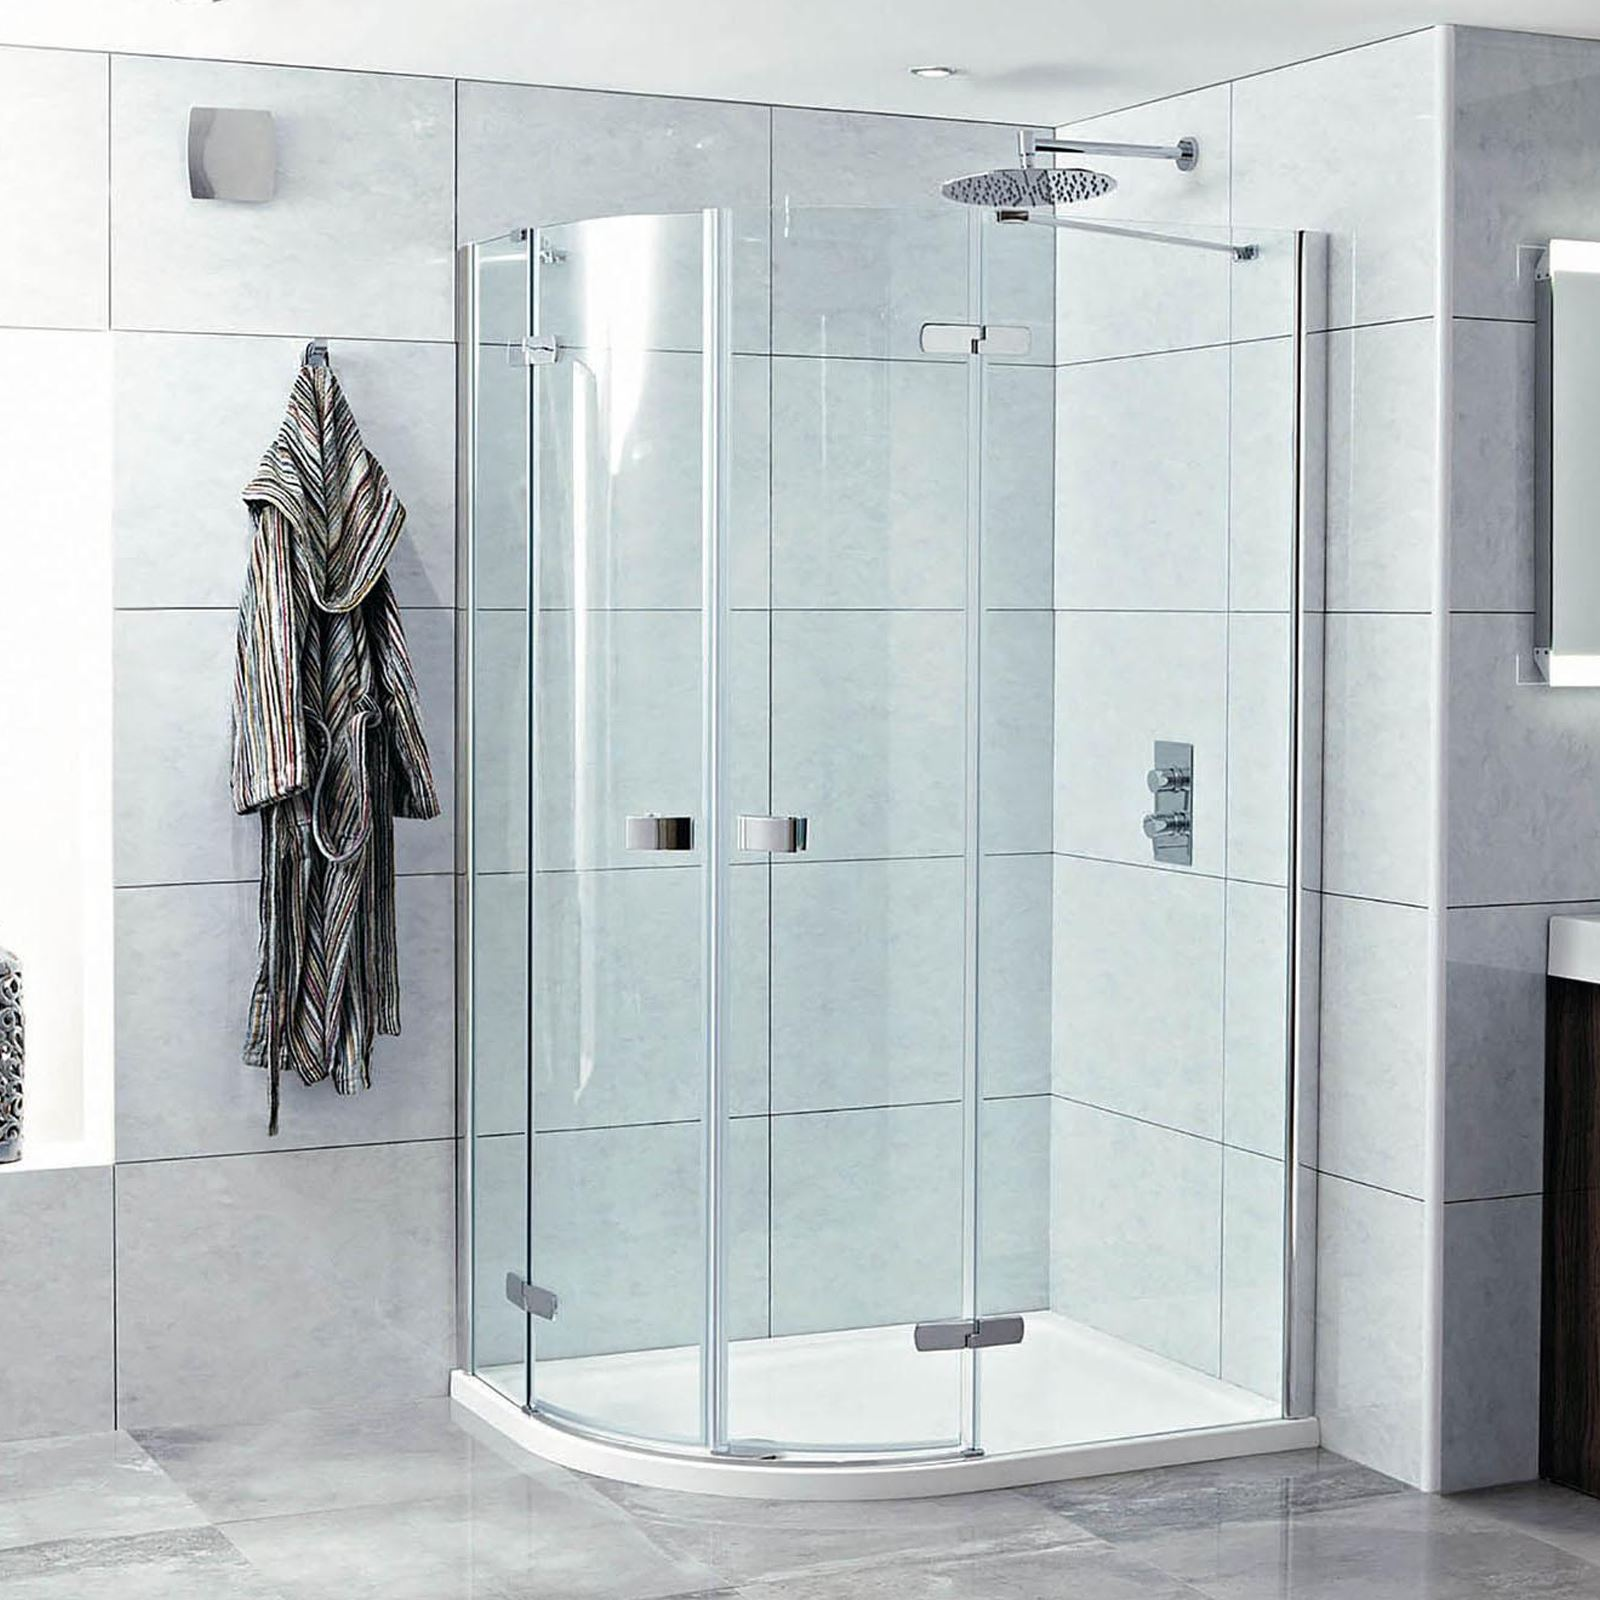 1200mm(w) x 900mm(d) Hinged Offset Quadrant Easy Clean Shower ...